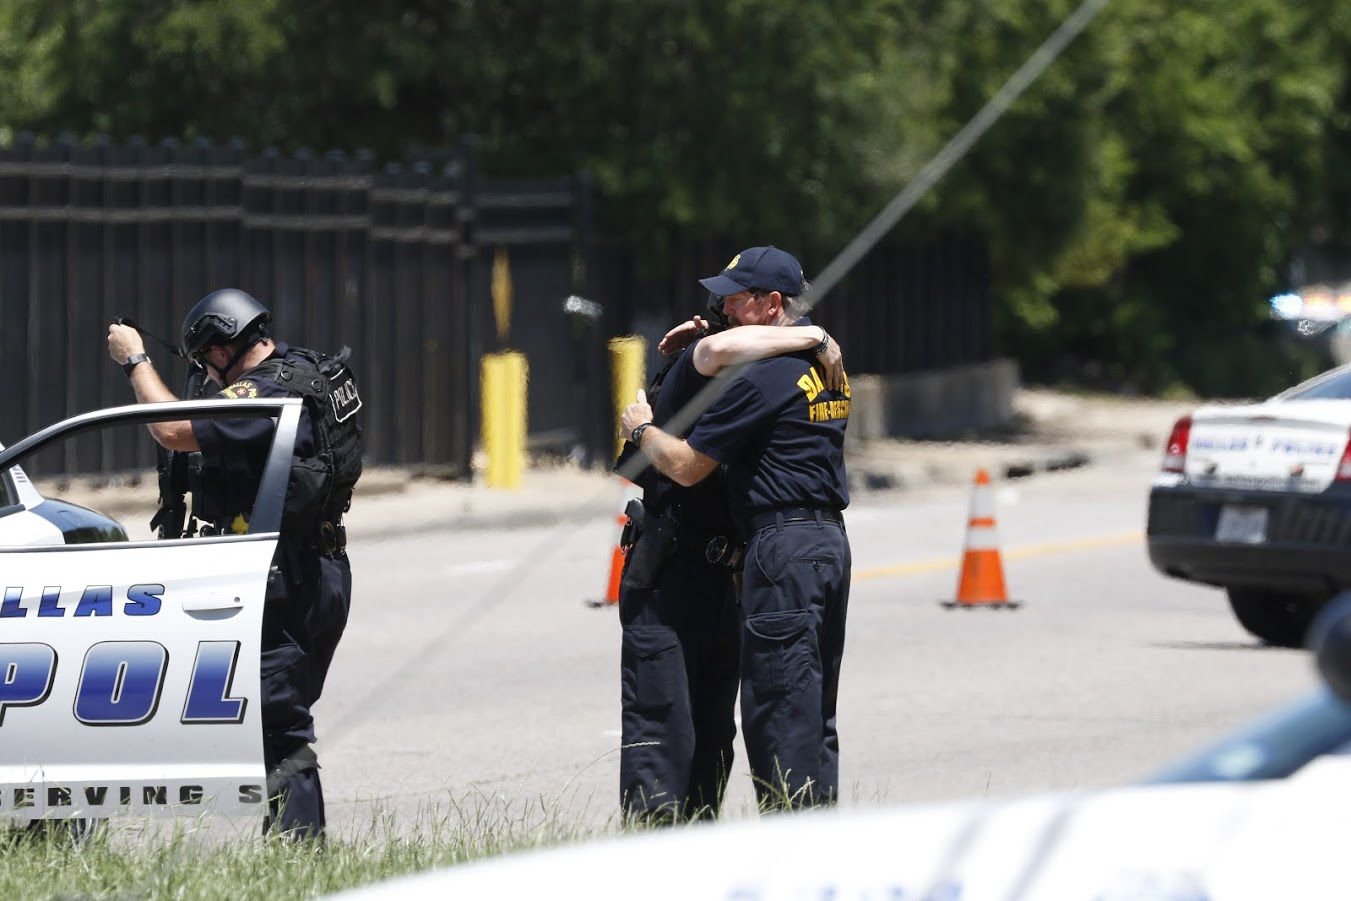 William Bruce (right) embraces son Chase near the scene of Monday's fatal shooting that left two dead and sent paramedic William An to the hospital in critical condition. (Jae S. Lee/The Dallas Morning News)